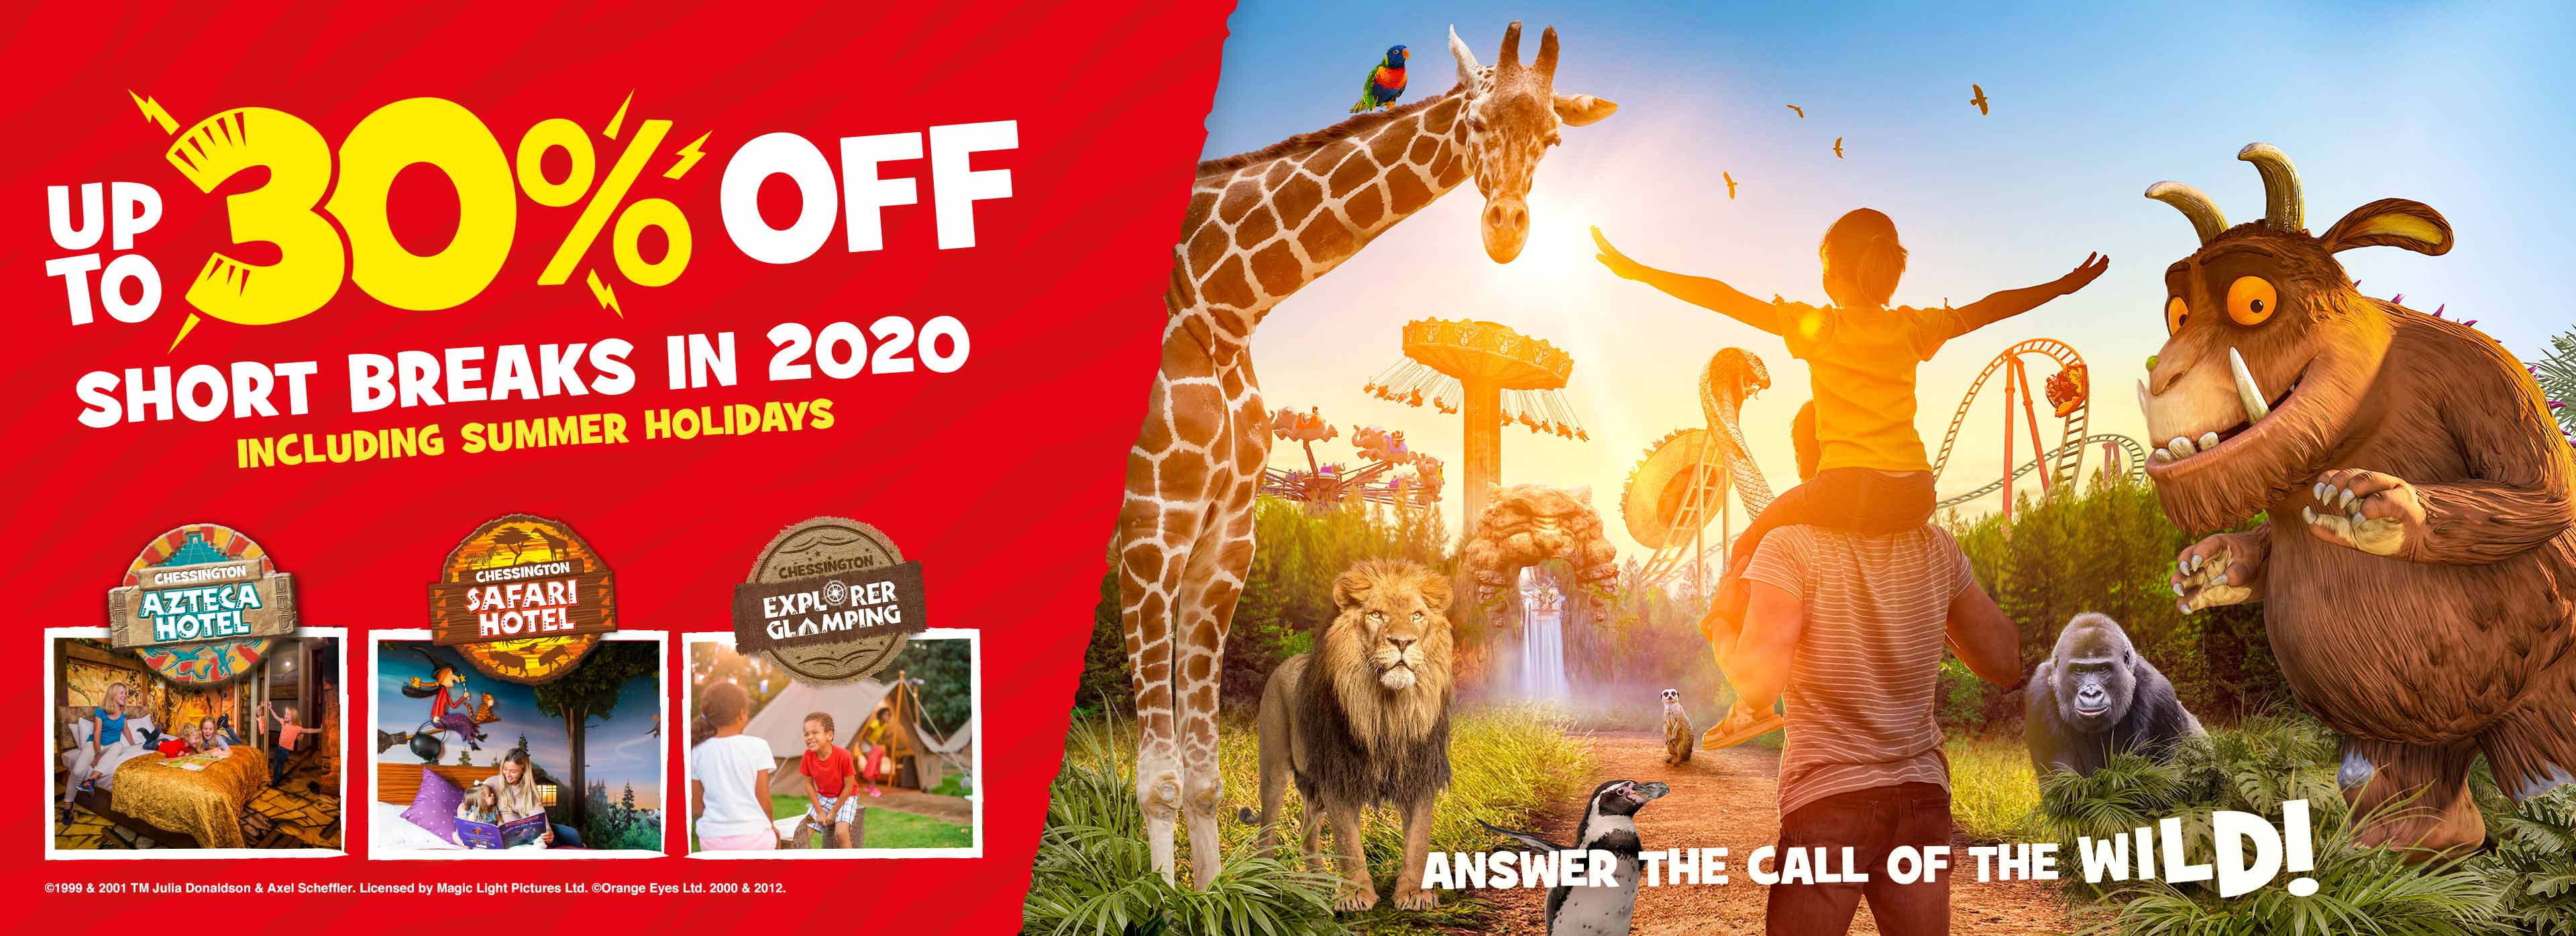 Early Booking Offer 2020 with Chessington Holidays